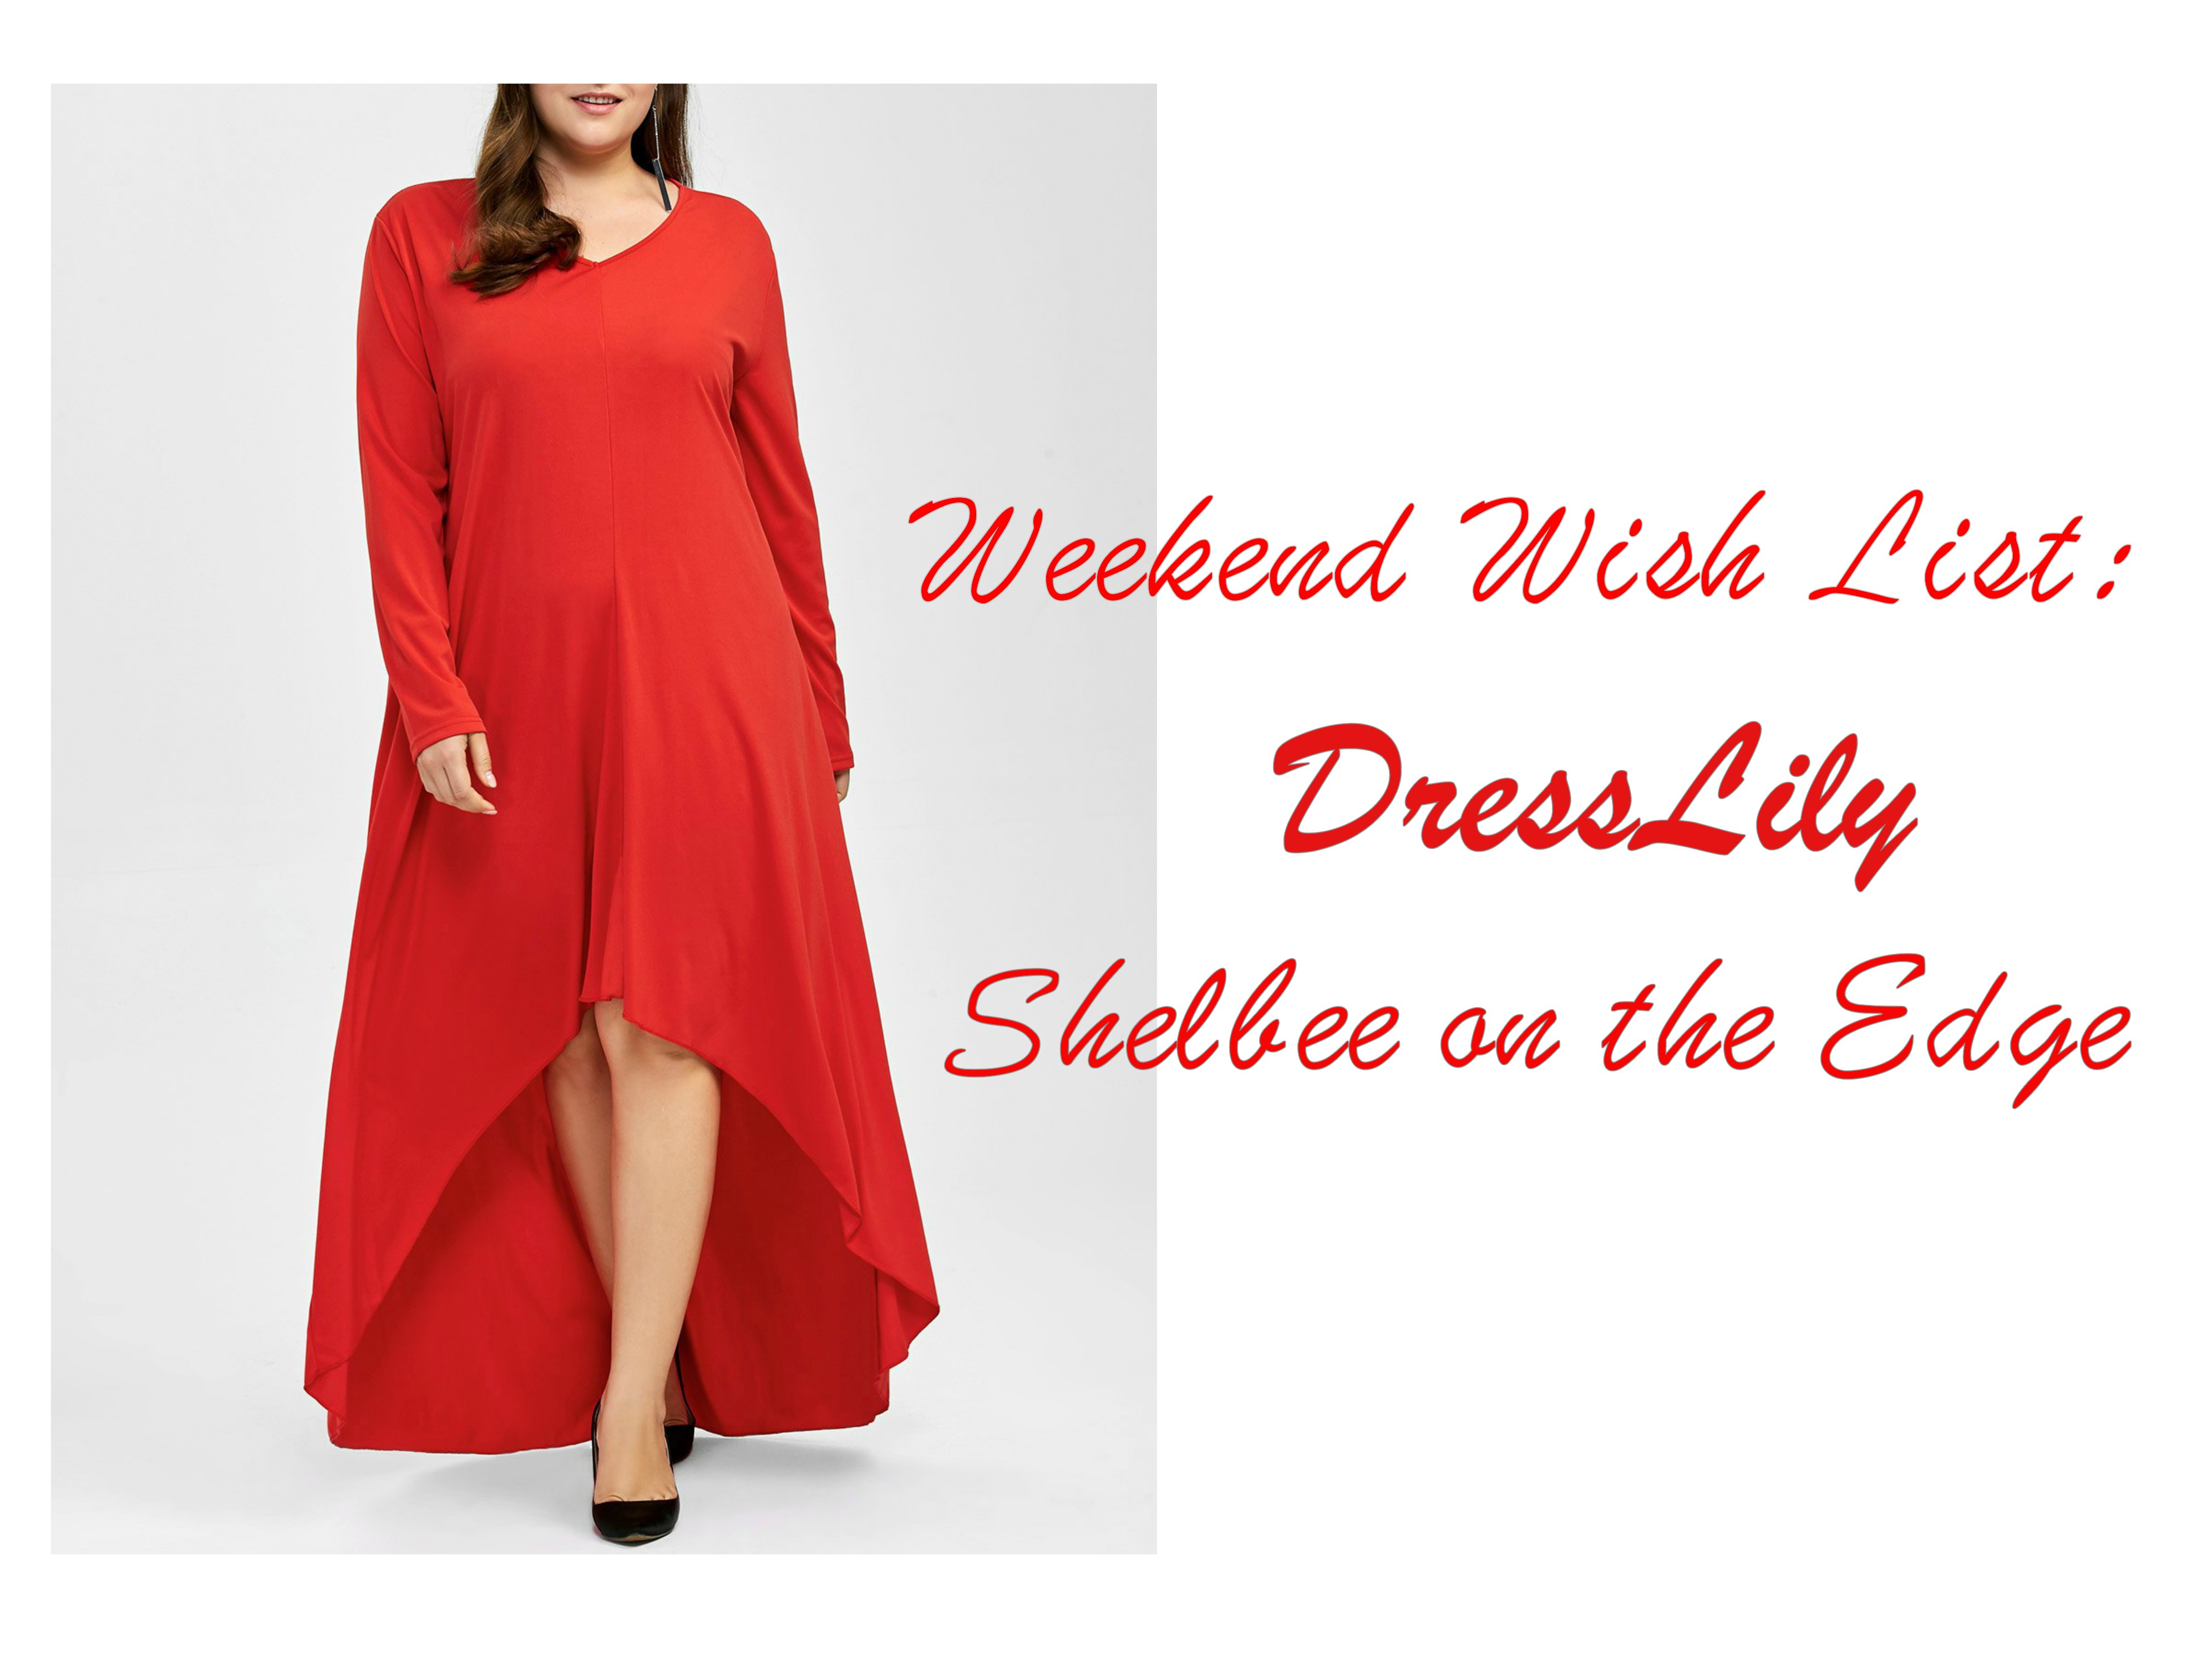 Weekend Wish List: DressLily